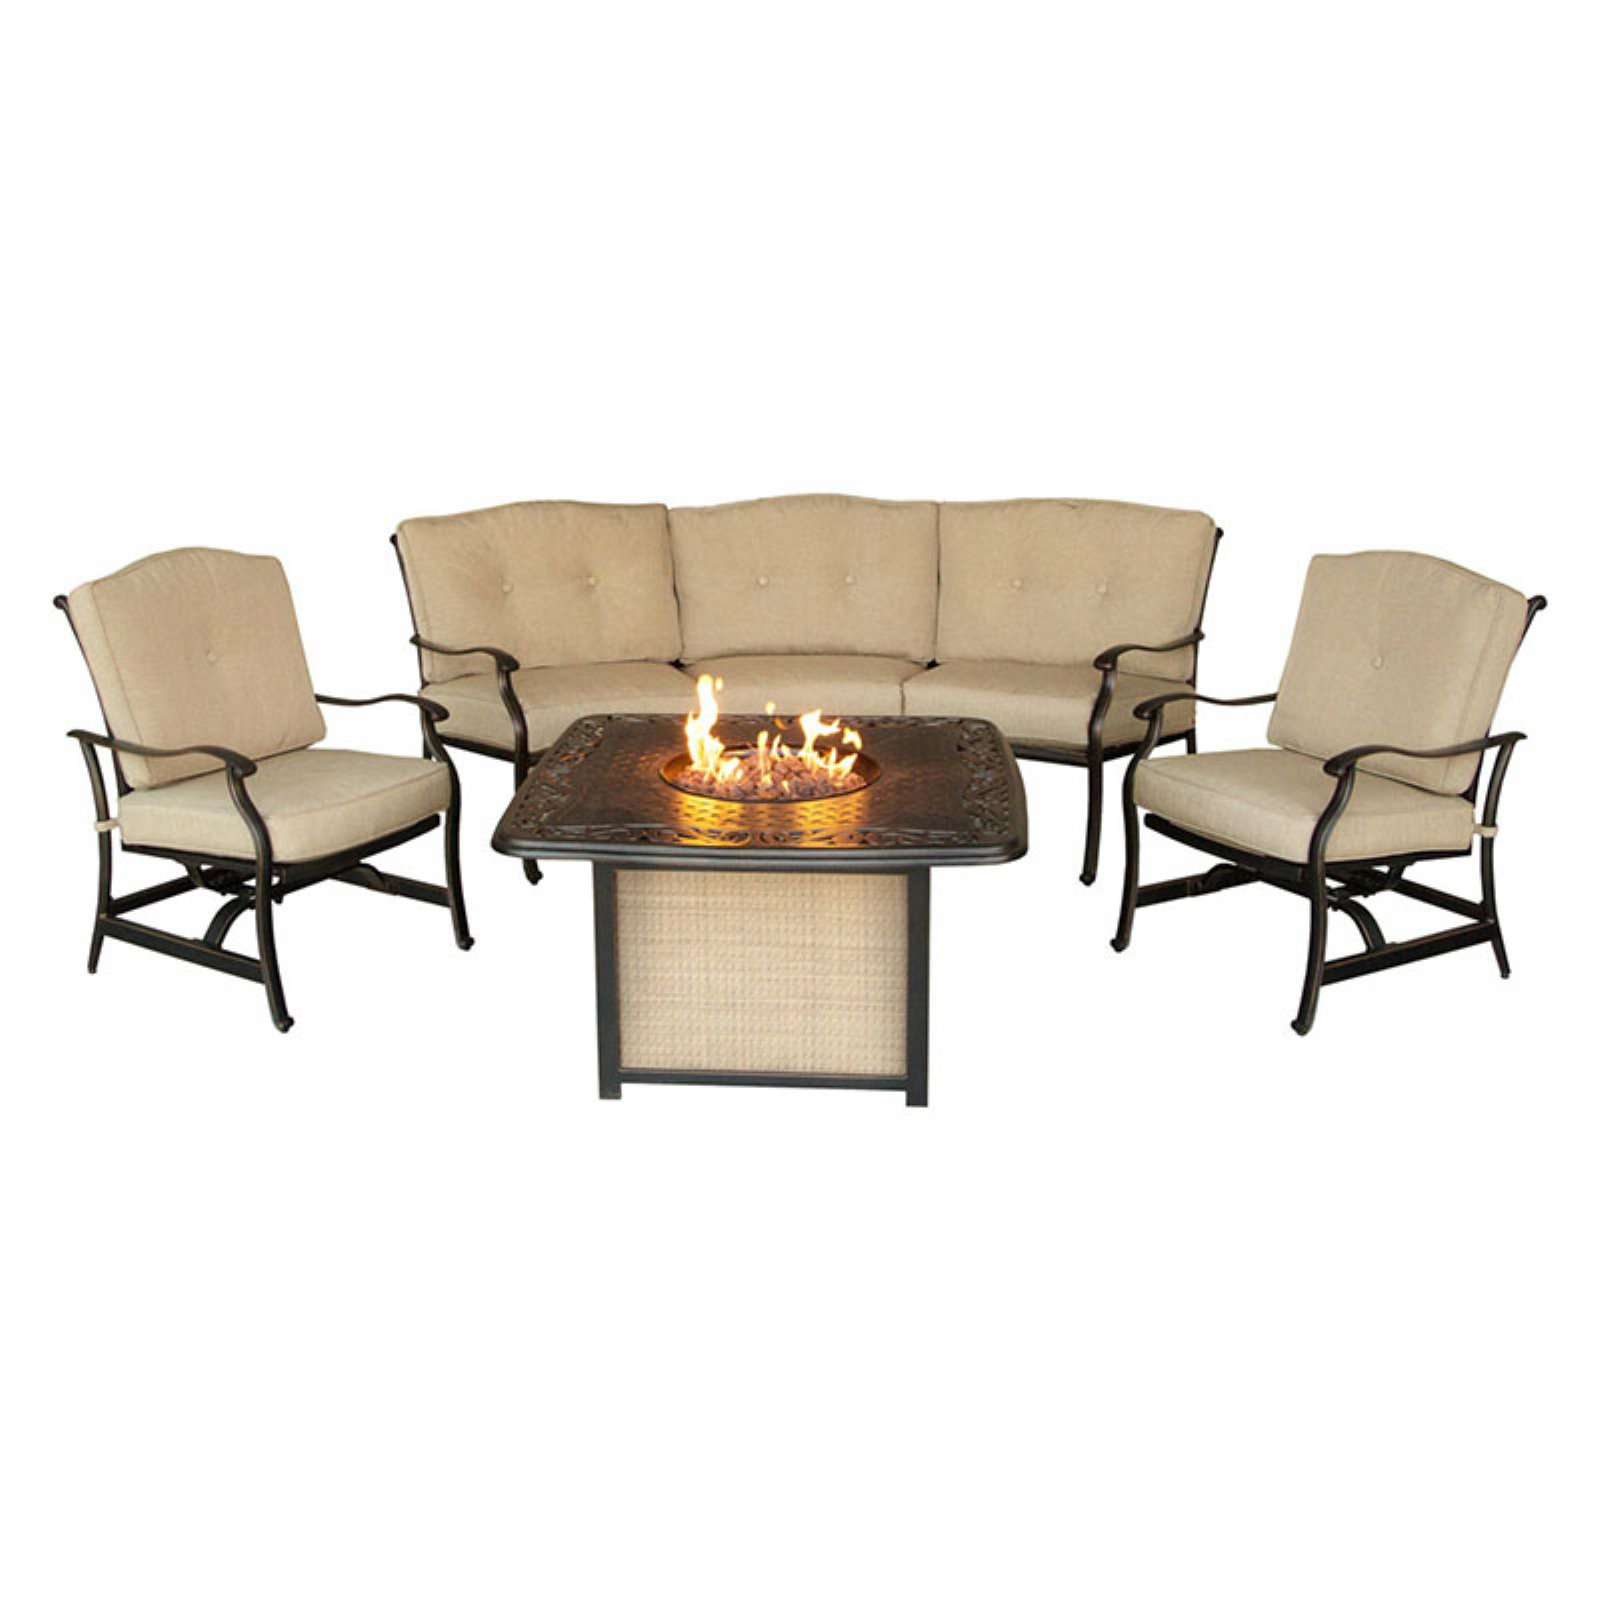 Hanover Outdoor Traditions 4-Piece Cast-Top Firepit Lounge Set, Natural Oat Bronze by Hanover Outdoor